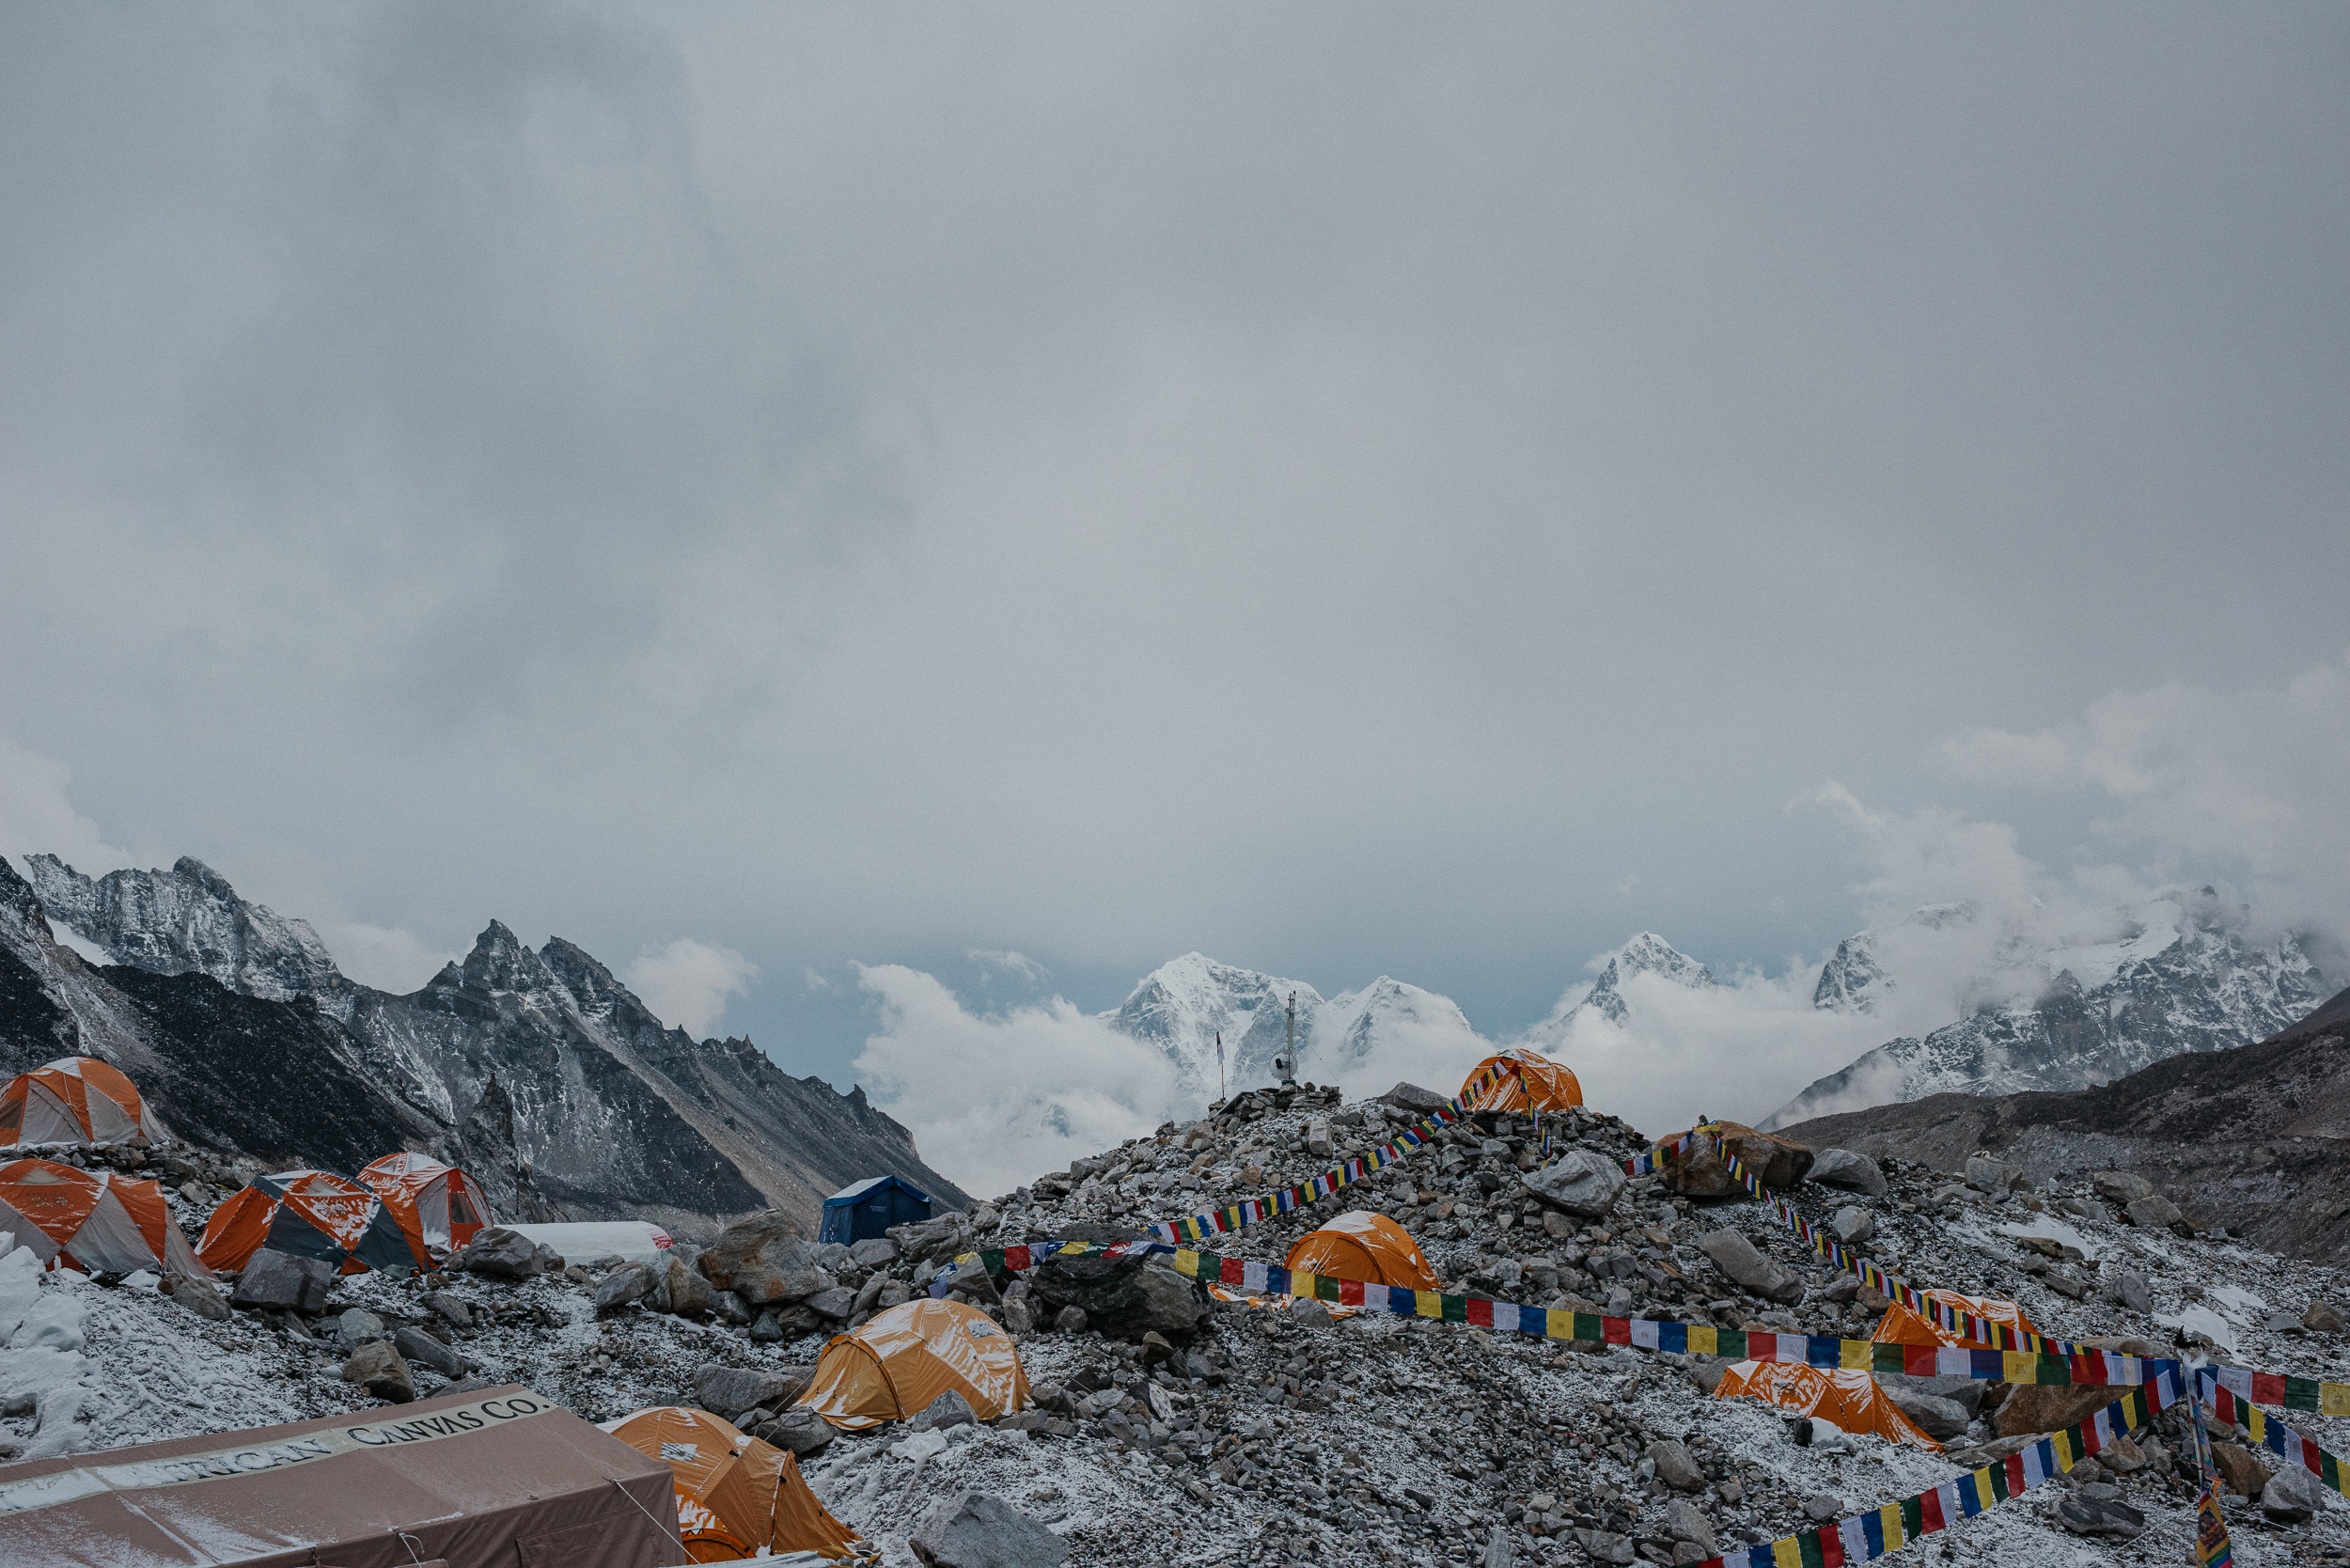 Nepal_EverestBaseCamp_2019_TaraShupe_Photography_DSC_4259.jpg